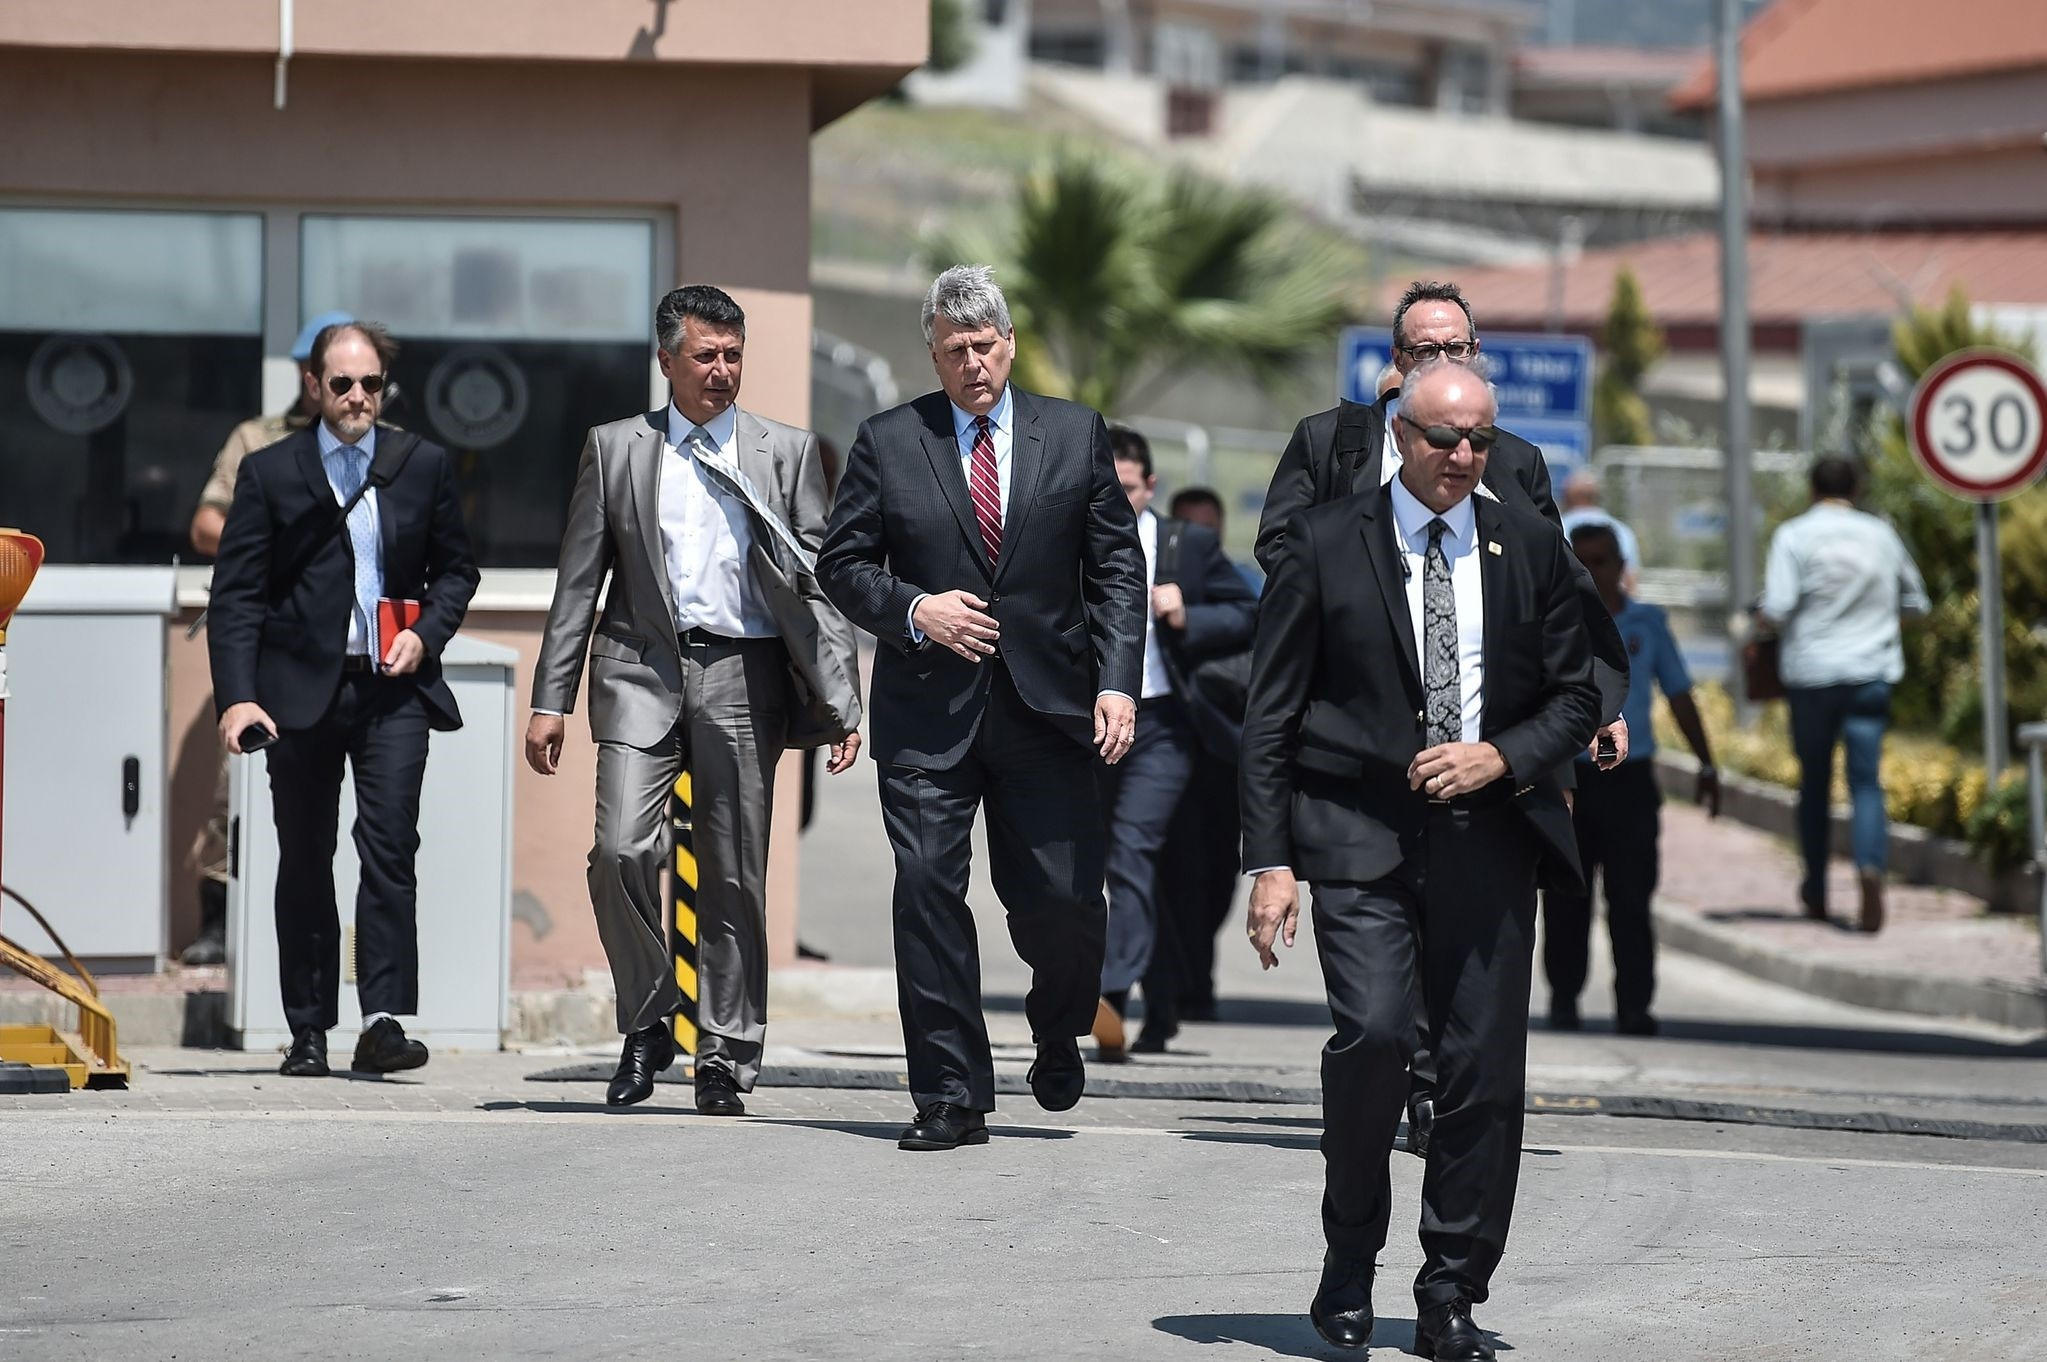 U.S. Charge du2019Affairs Philip Kosnett, third from left, leaves after the trial of U.S. Pastor Andrew Brunson who has been detained in Turkey for over a year on terrorism charges, Aliau011fa, u0130zmir, July 18.